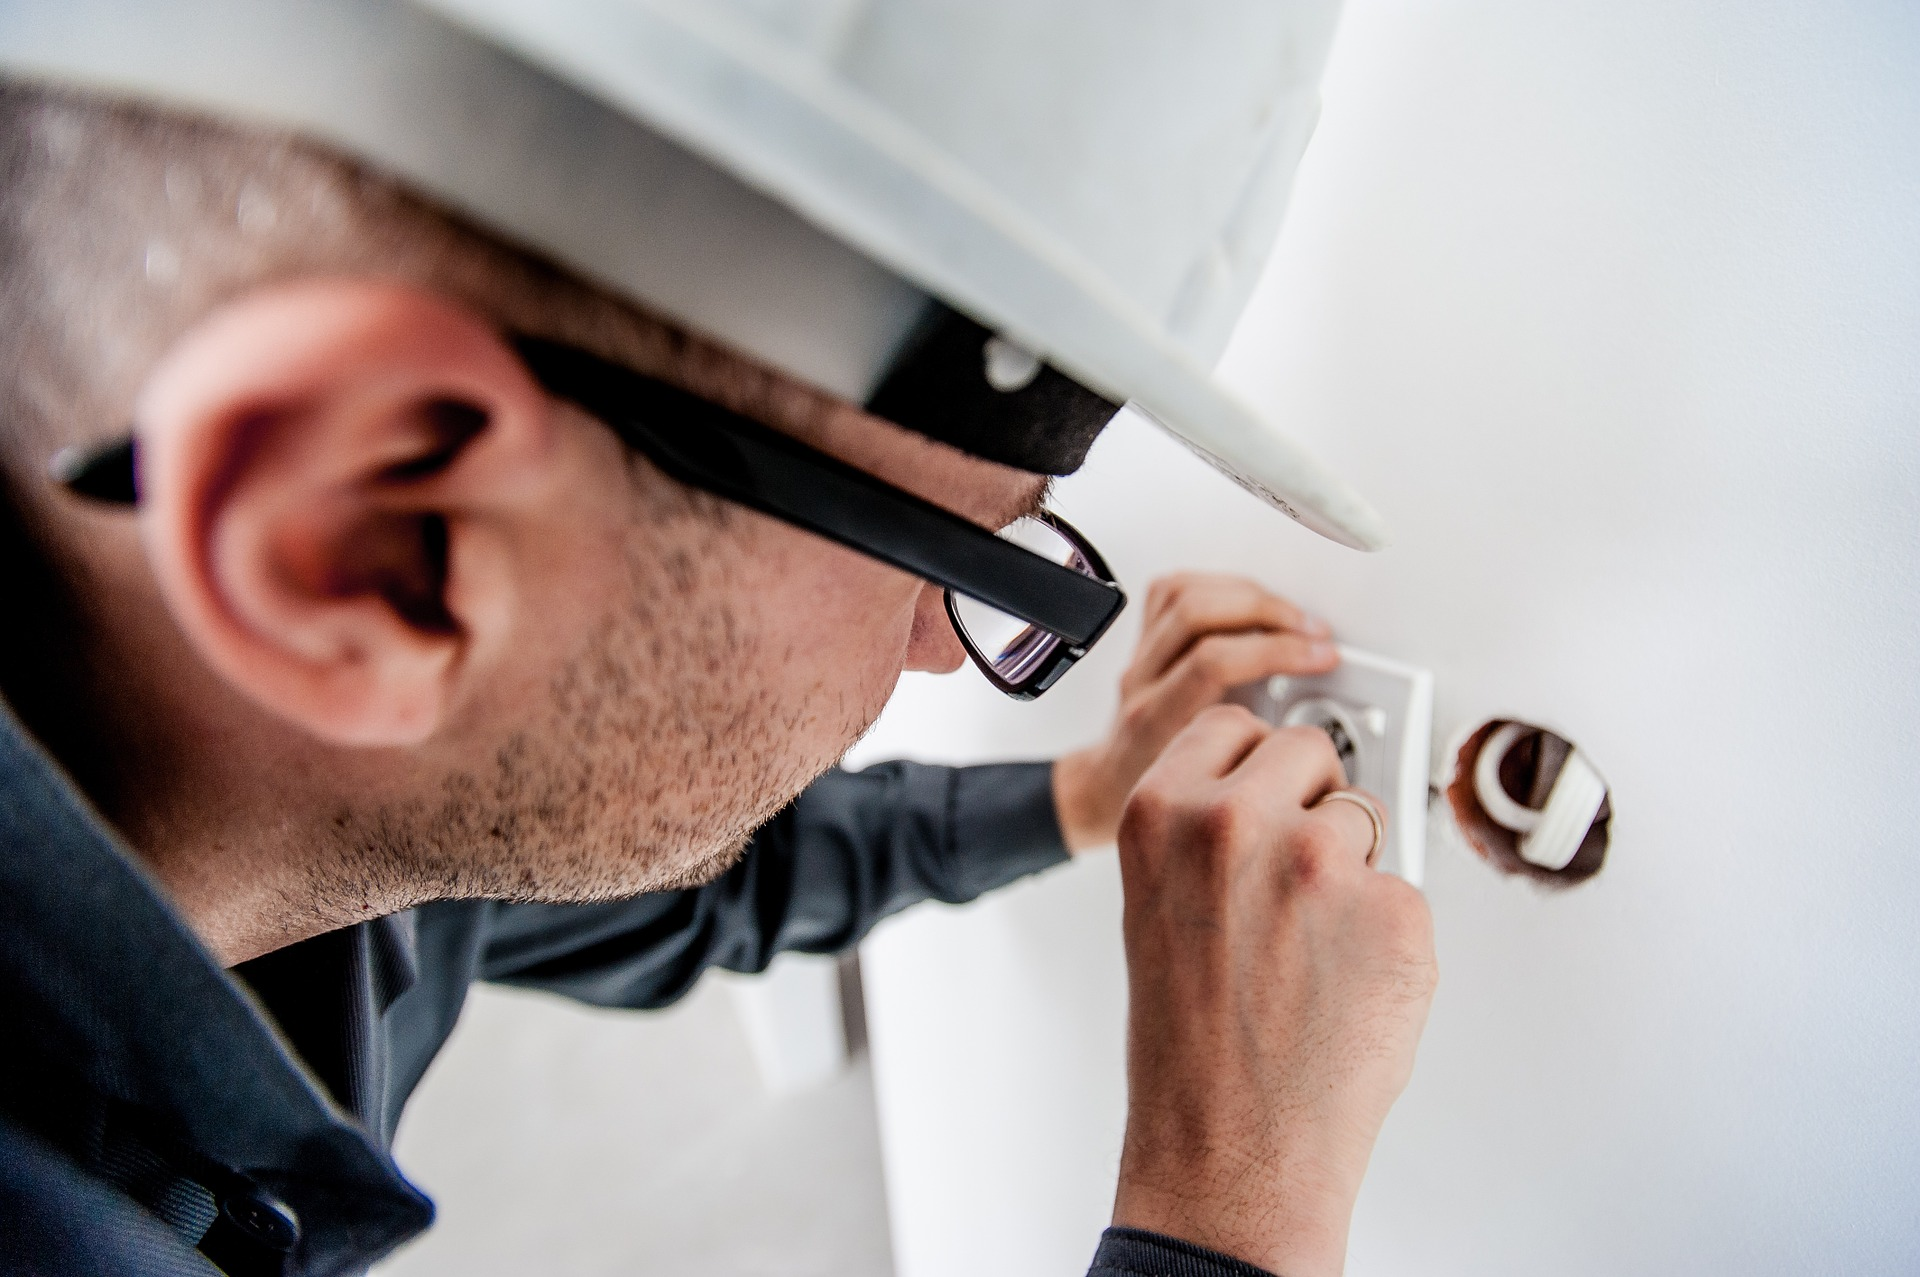 Electrician fixing the electric outlet